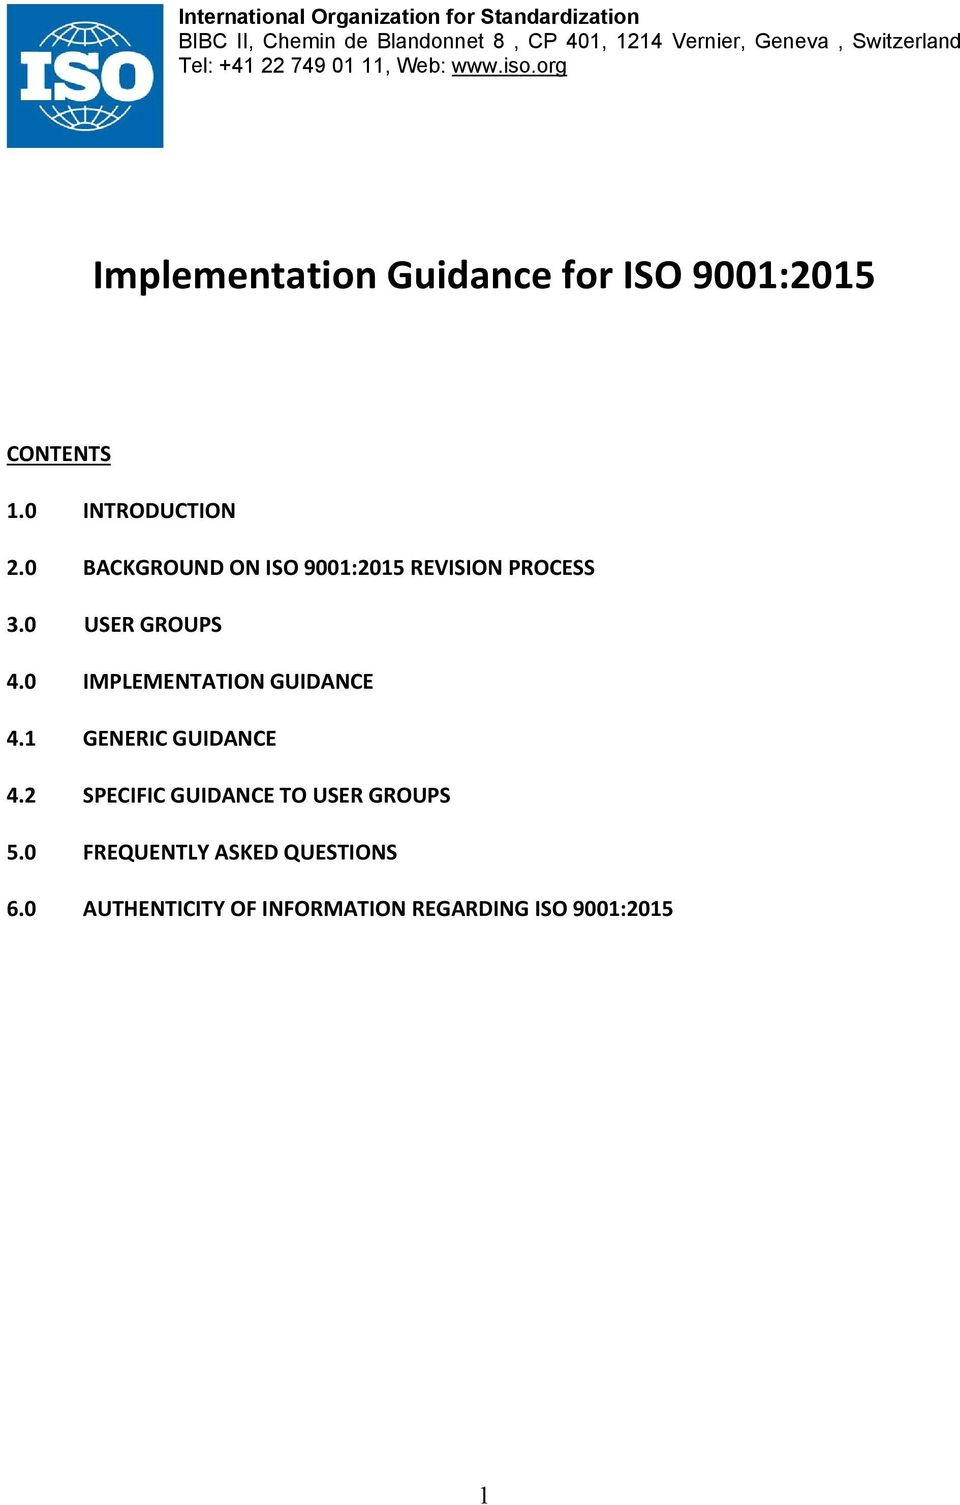 0 INTRODUCTION 2.0 BACKGROUND ON ISO 9001:2015 REVISION PROCESS 3.0 USER GROUPS 4.0 IMPLEMENTATION GUIDANCE 4.